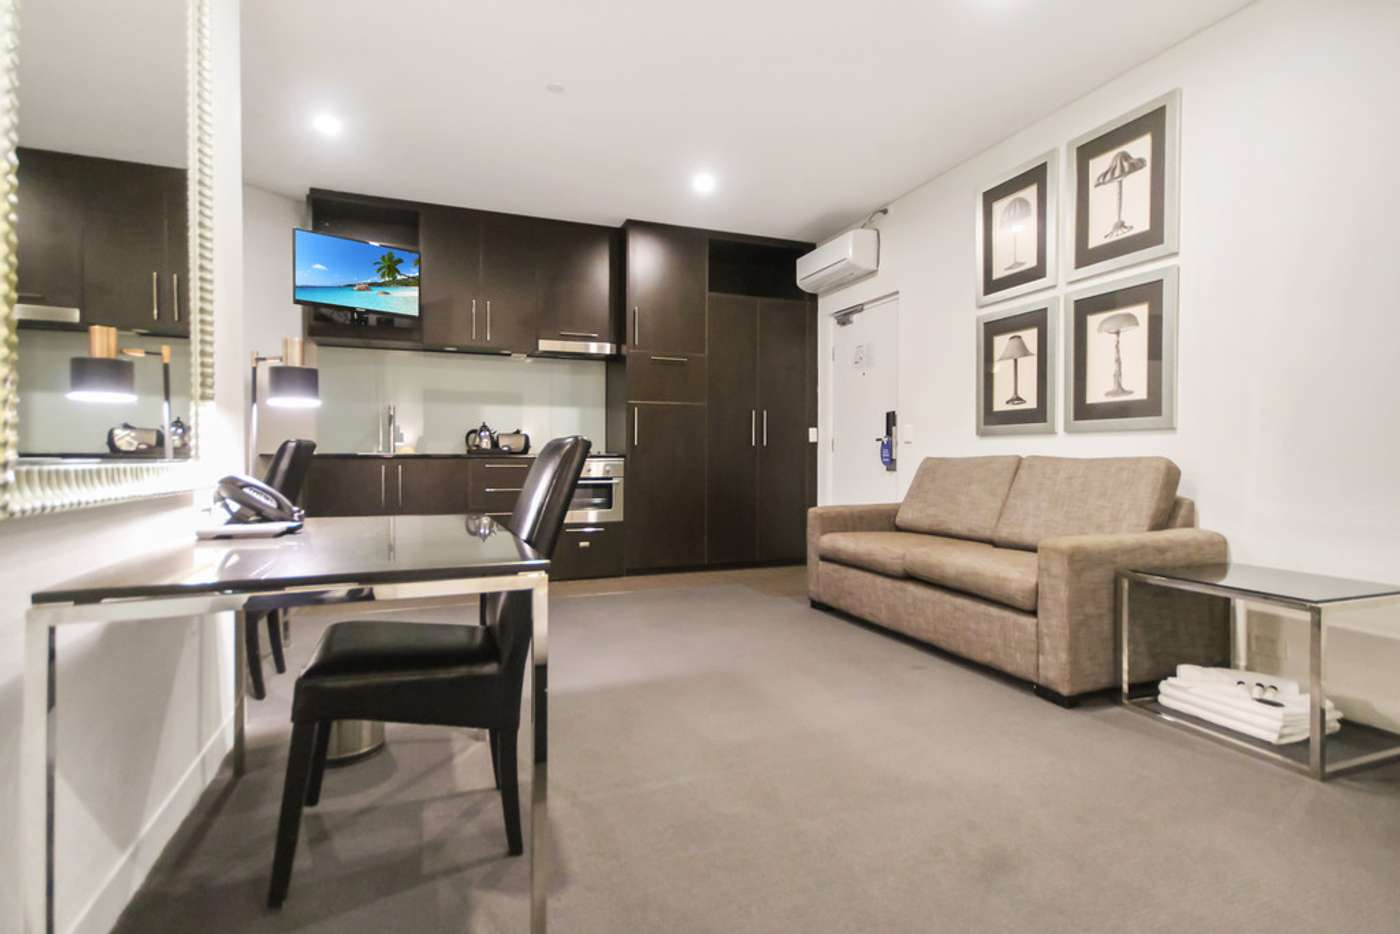 Main view of Homely apartment listing, 1101/480 Collins St, Melbourne VIC 3000